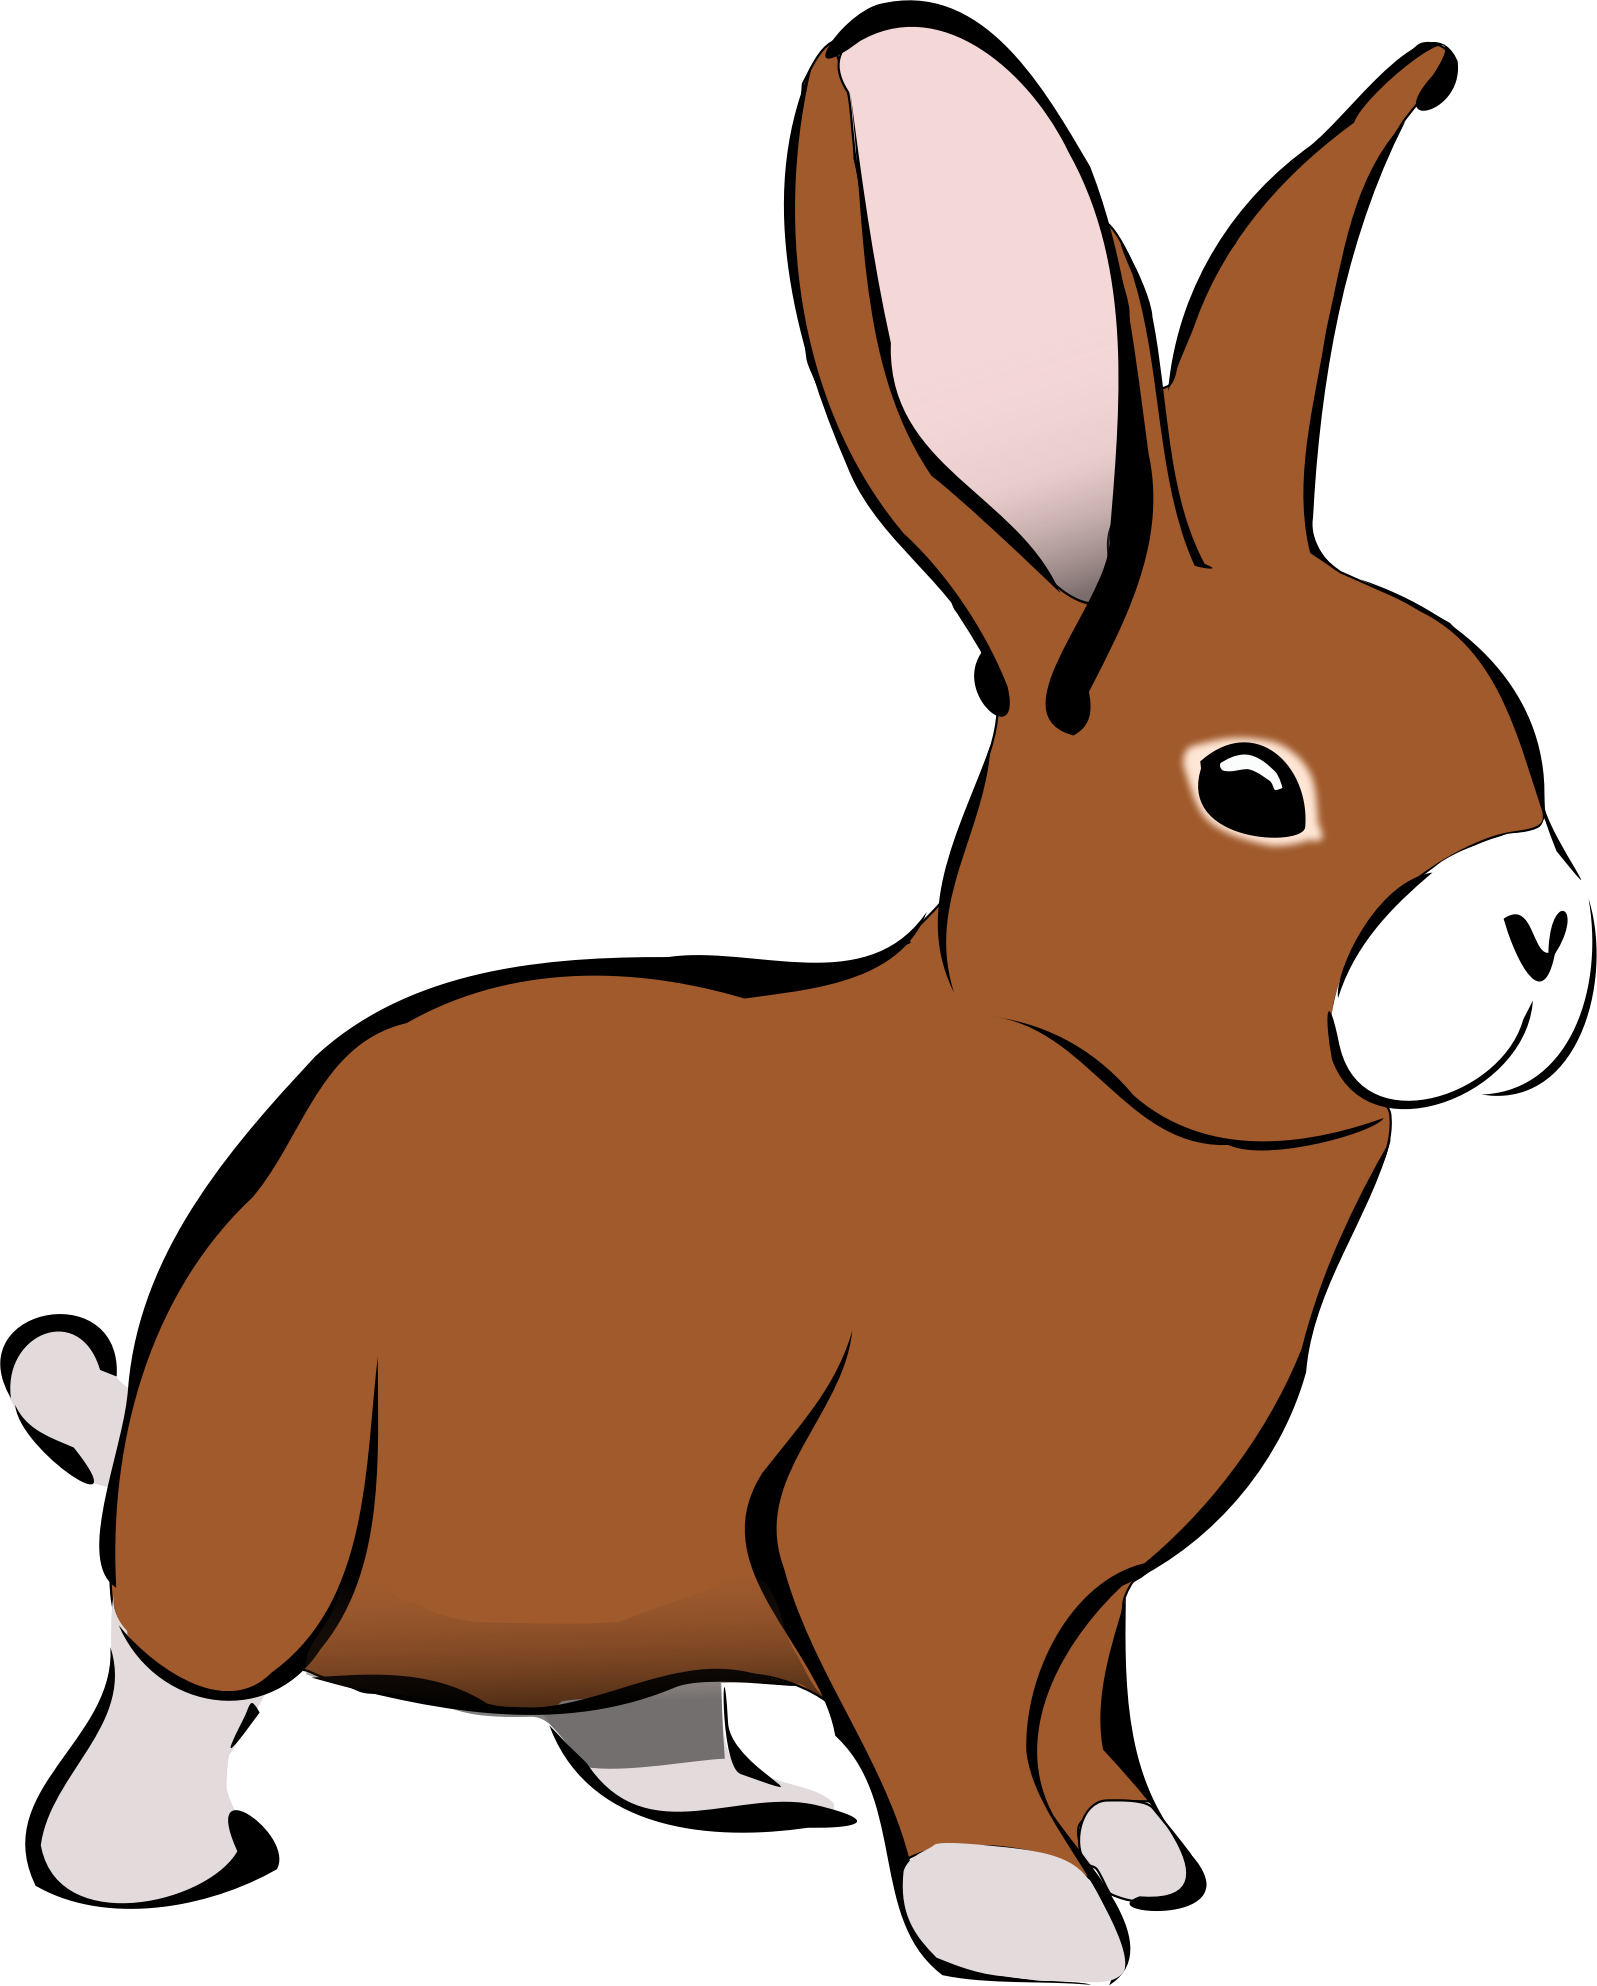 Clipart brown rabbit big image png voltagebd Image collections